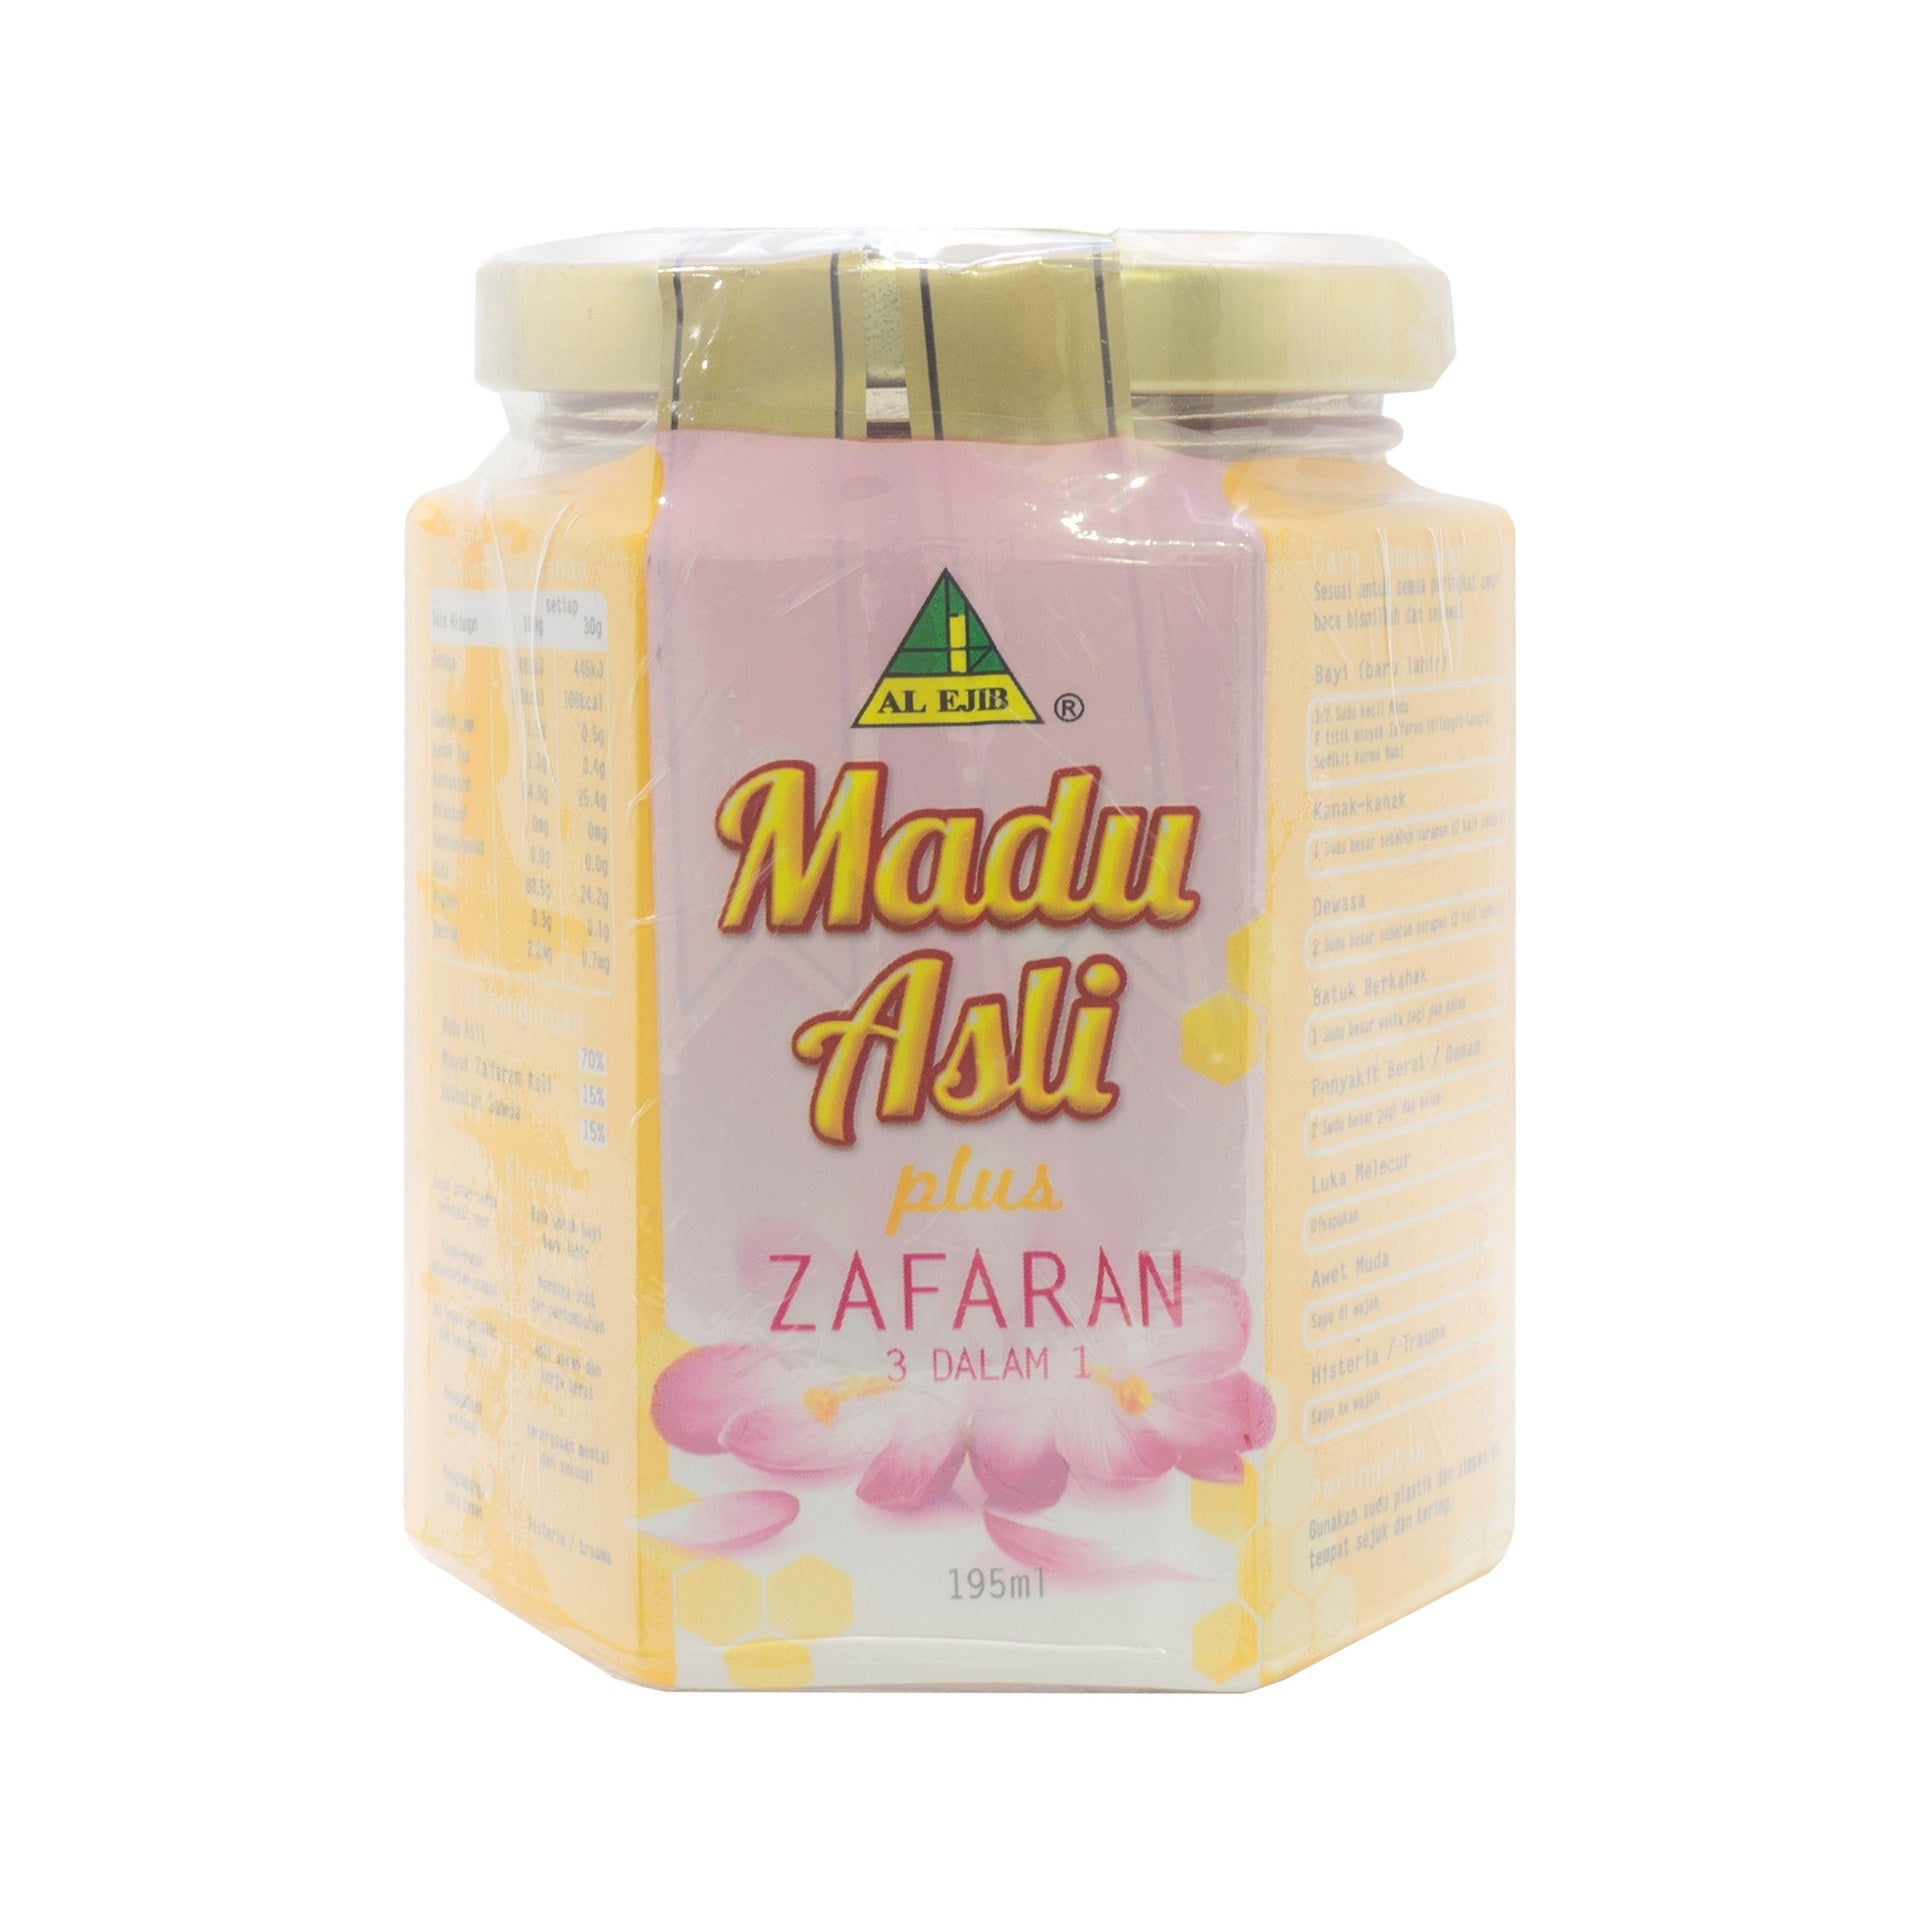 Al Ejib, Madu Asli Plus Zafaran 3 in 1, 195 ml